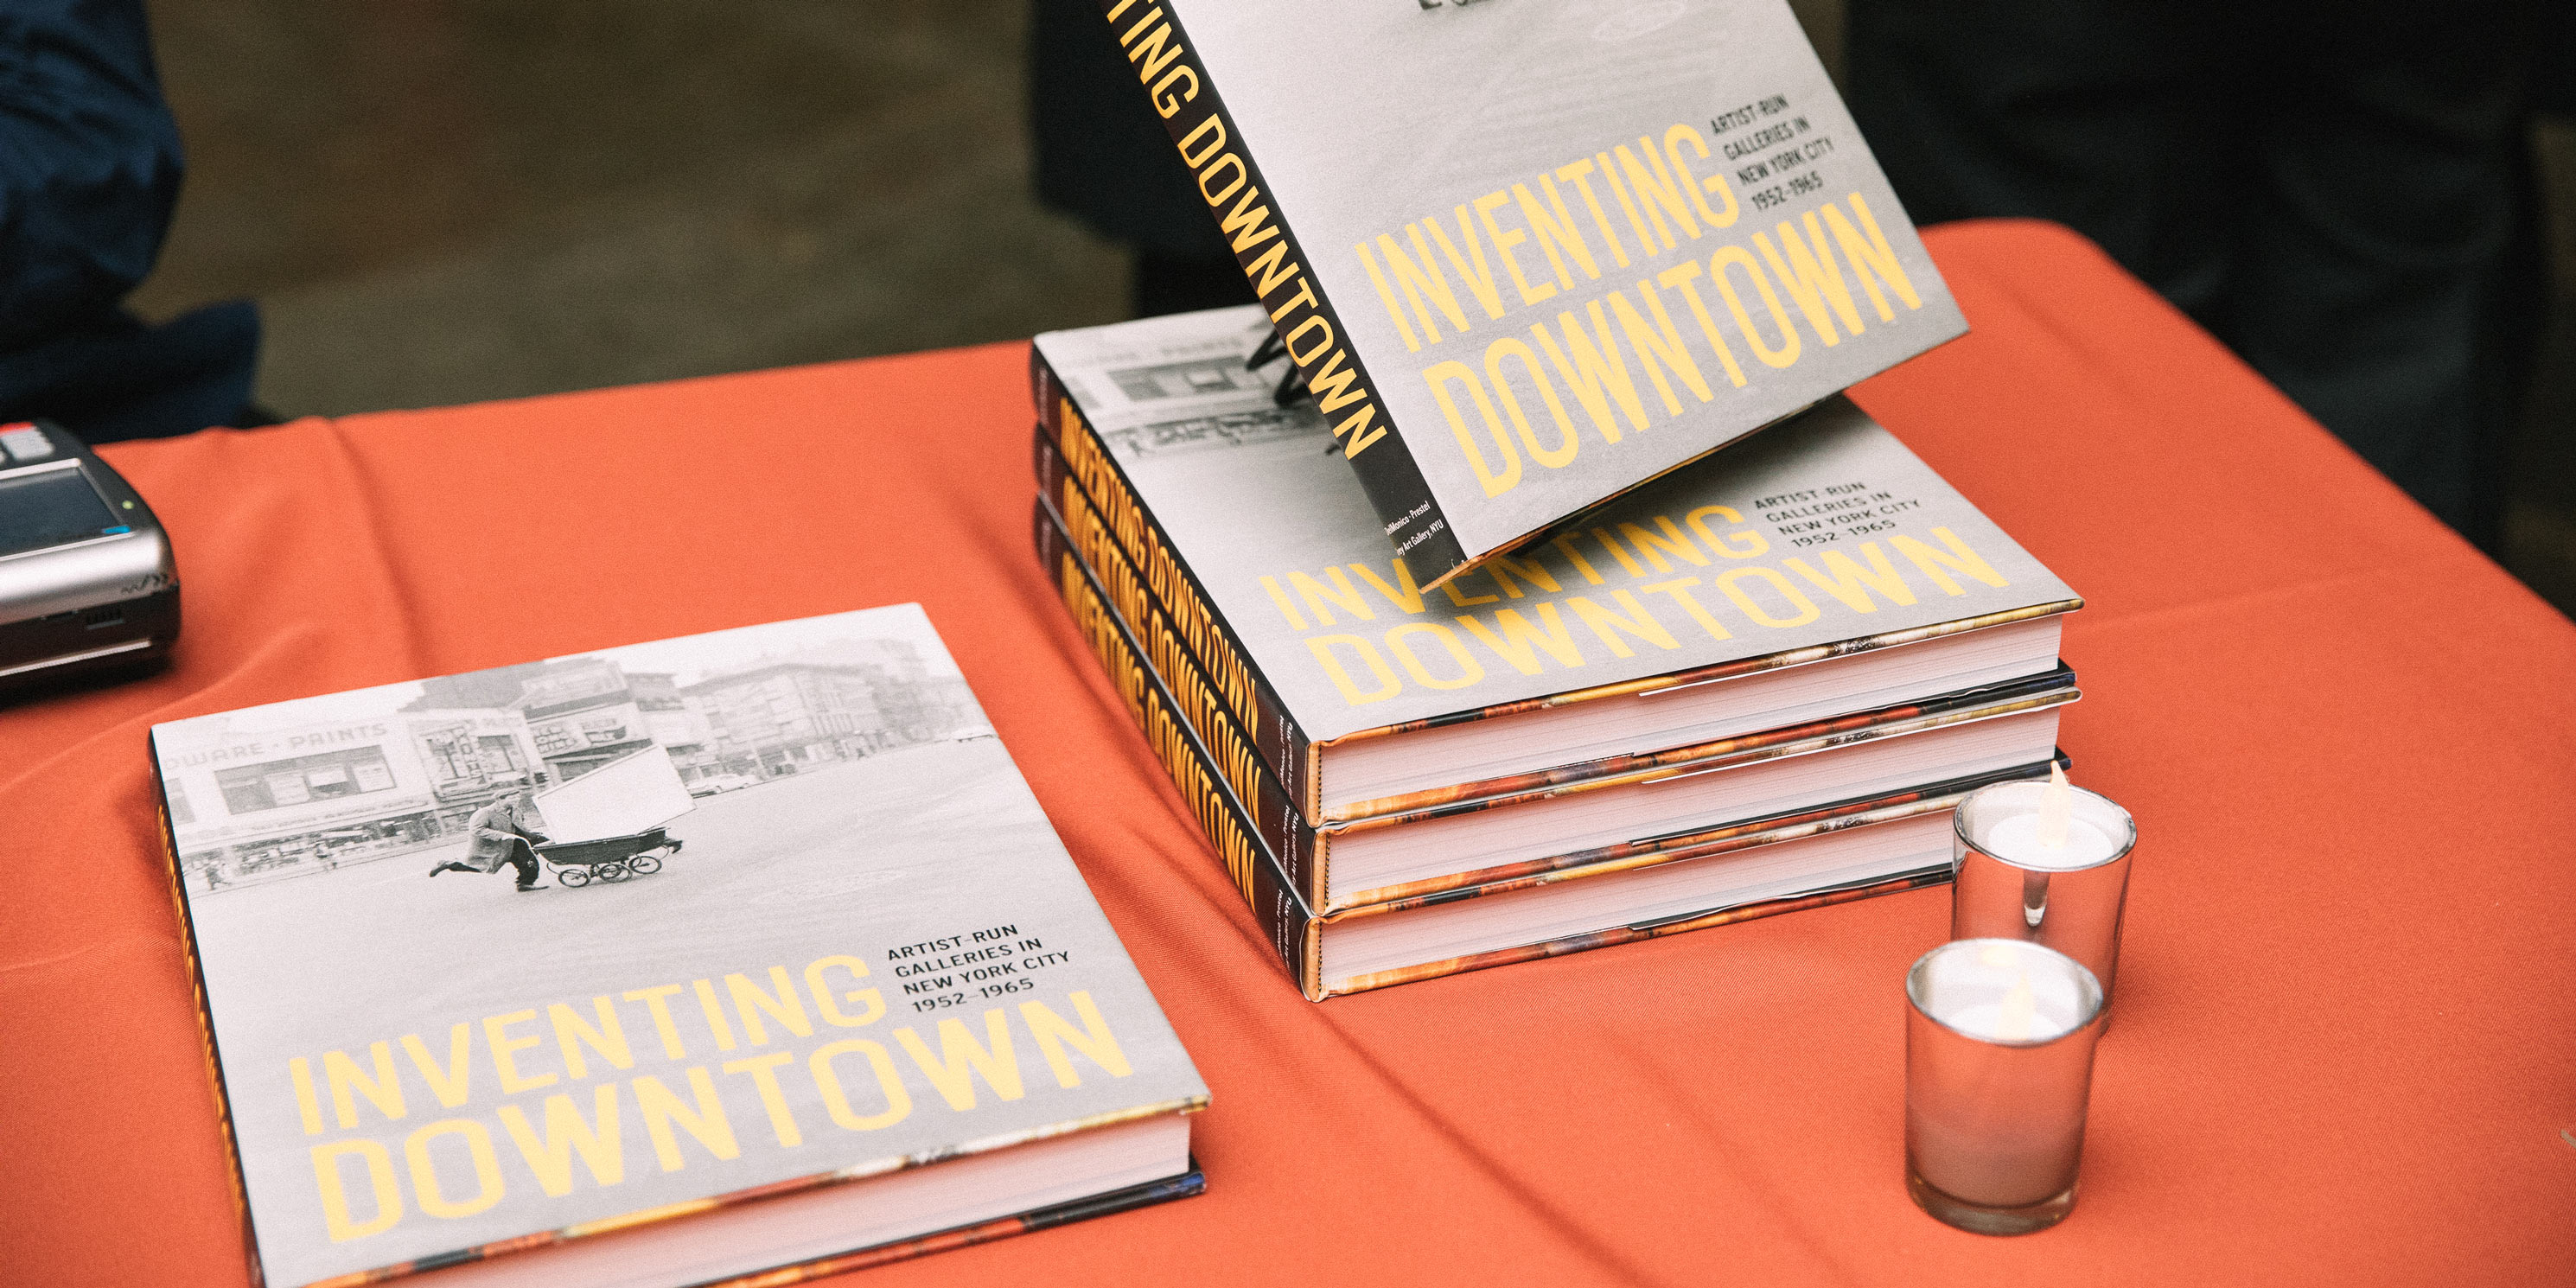 Inventing Downtown: Artist–Run Galleries in New York City, 1952-1965, by Melissa Rachleff displayed on table